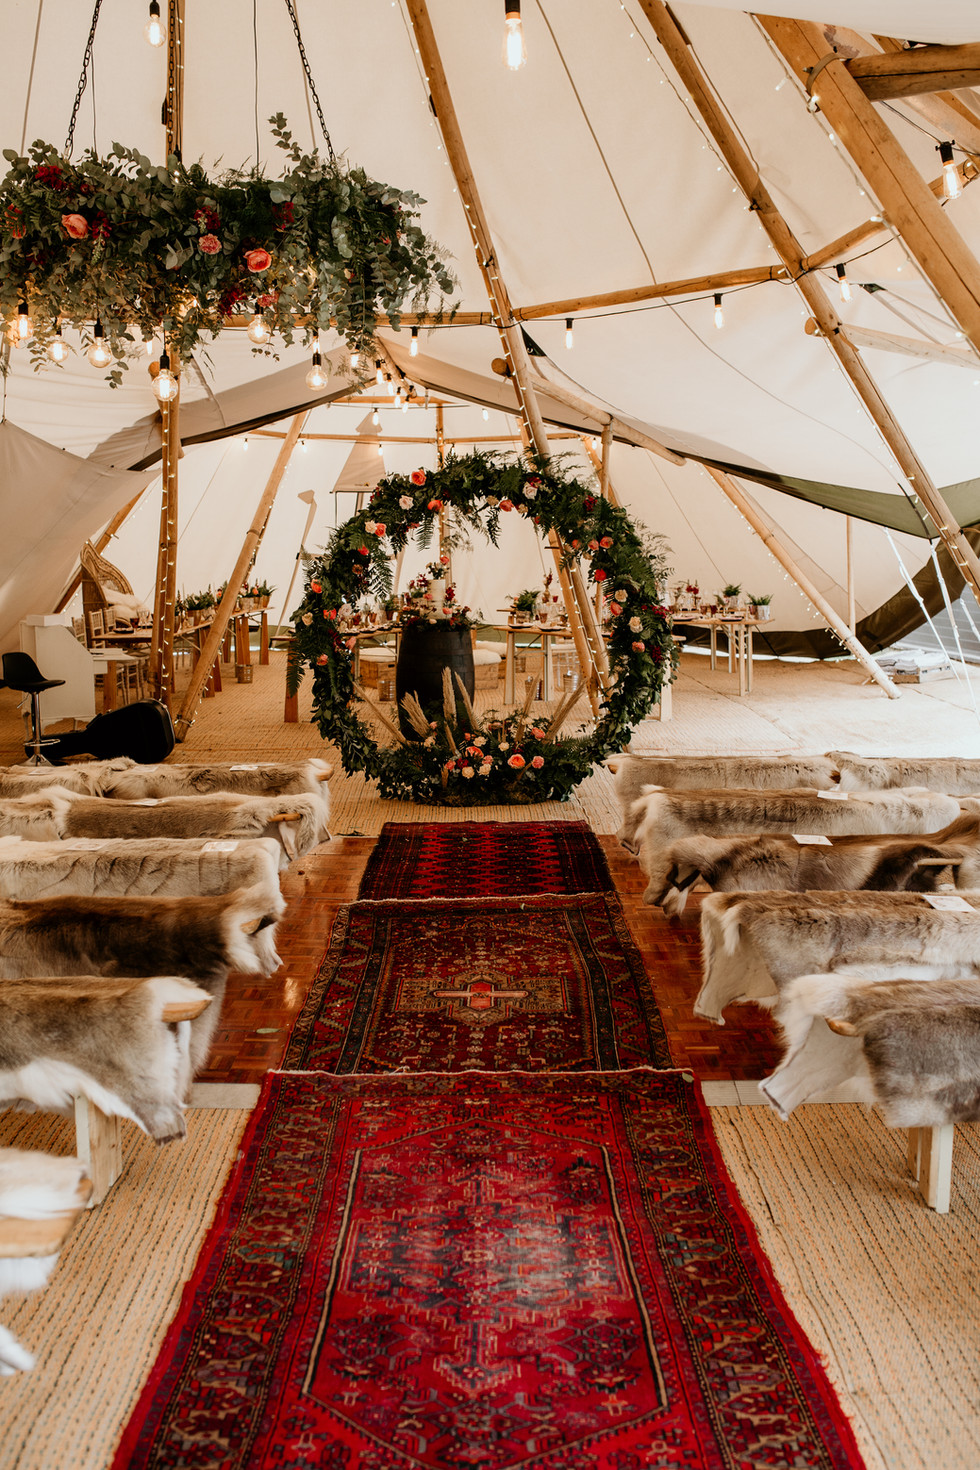 Wet wedding - For those with concerns about what to do if it rains, this will hopefully ease your mind! Here is a ceremony setup inside a tipi, showing it can look just as beautiful inside as outside! Adding a real intimate, atmospheric vibe.